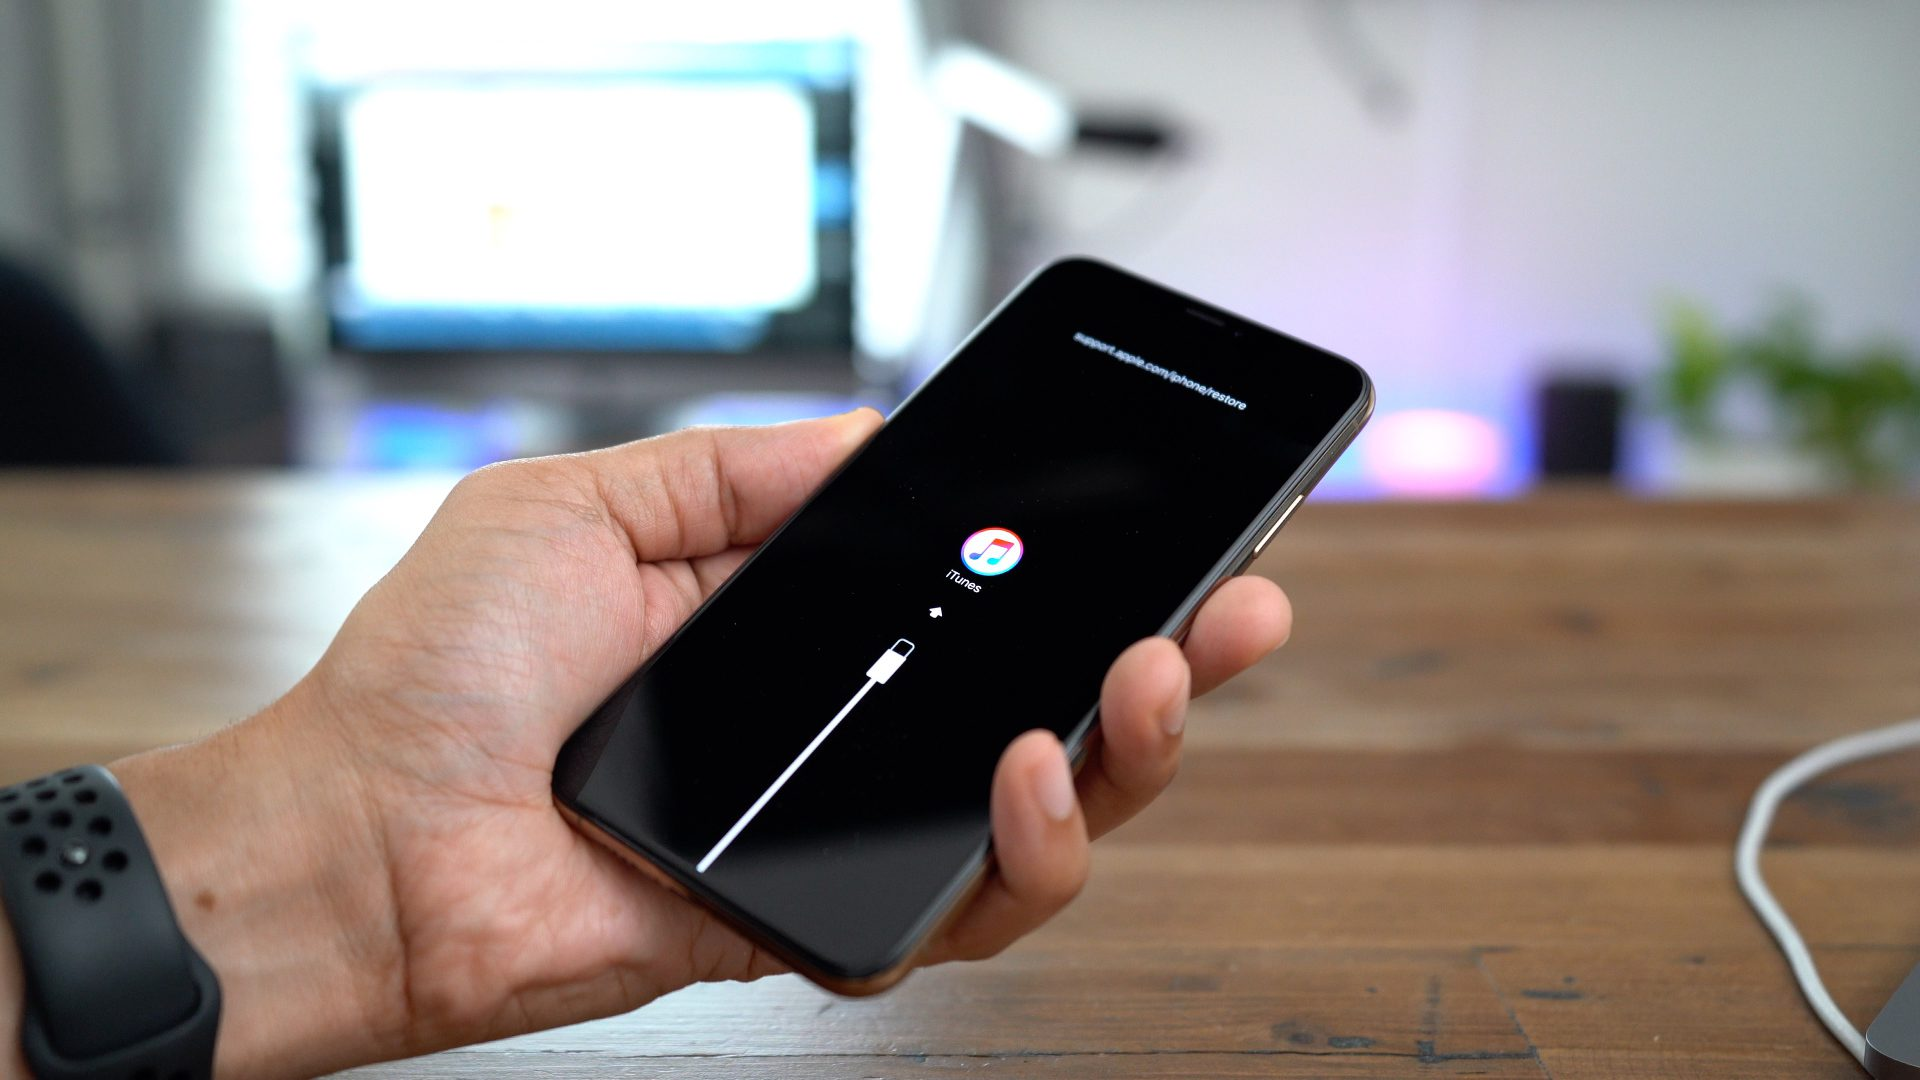 Battery iPhone XS was weaker than that of the Samsung Galaxy Note 9